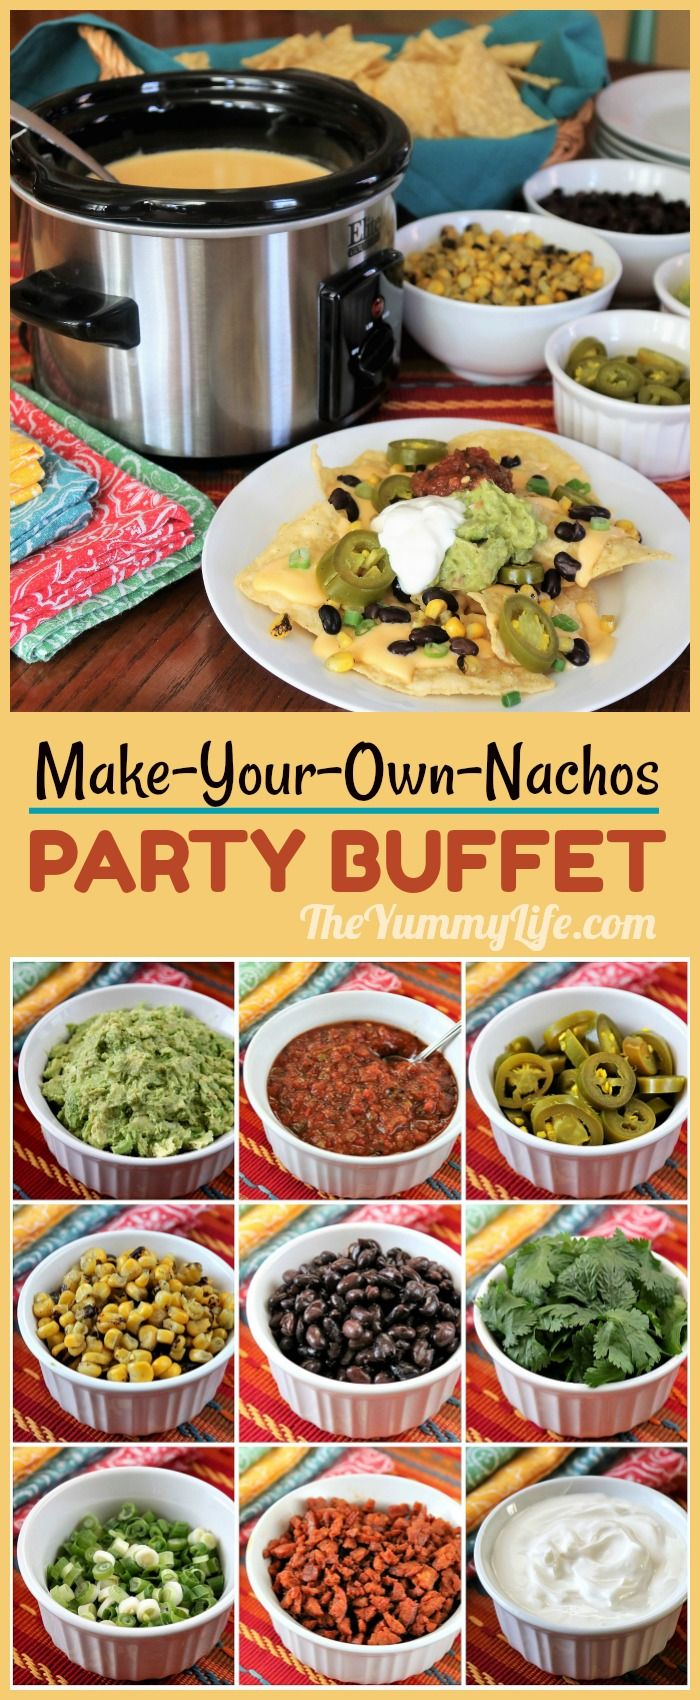 An easy menu for parties like Game Day and Cinco de Mayo that's always a crowd pleaser. Queso, chips and a variety of toppings are all you need. Make ahead convenience, too!  #Queso #Nachos #Dip #CheeseSauce #SlowCooker #CrockPot #MakeAhead #QuesoDip #GameDay #CincoDeMayo #Buffet #Party